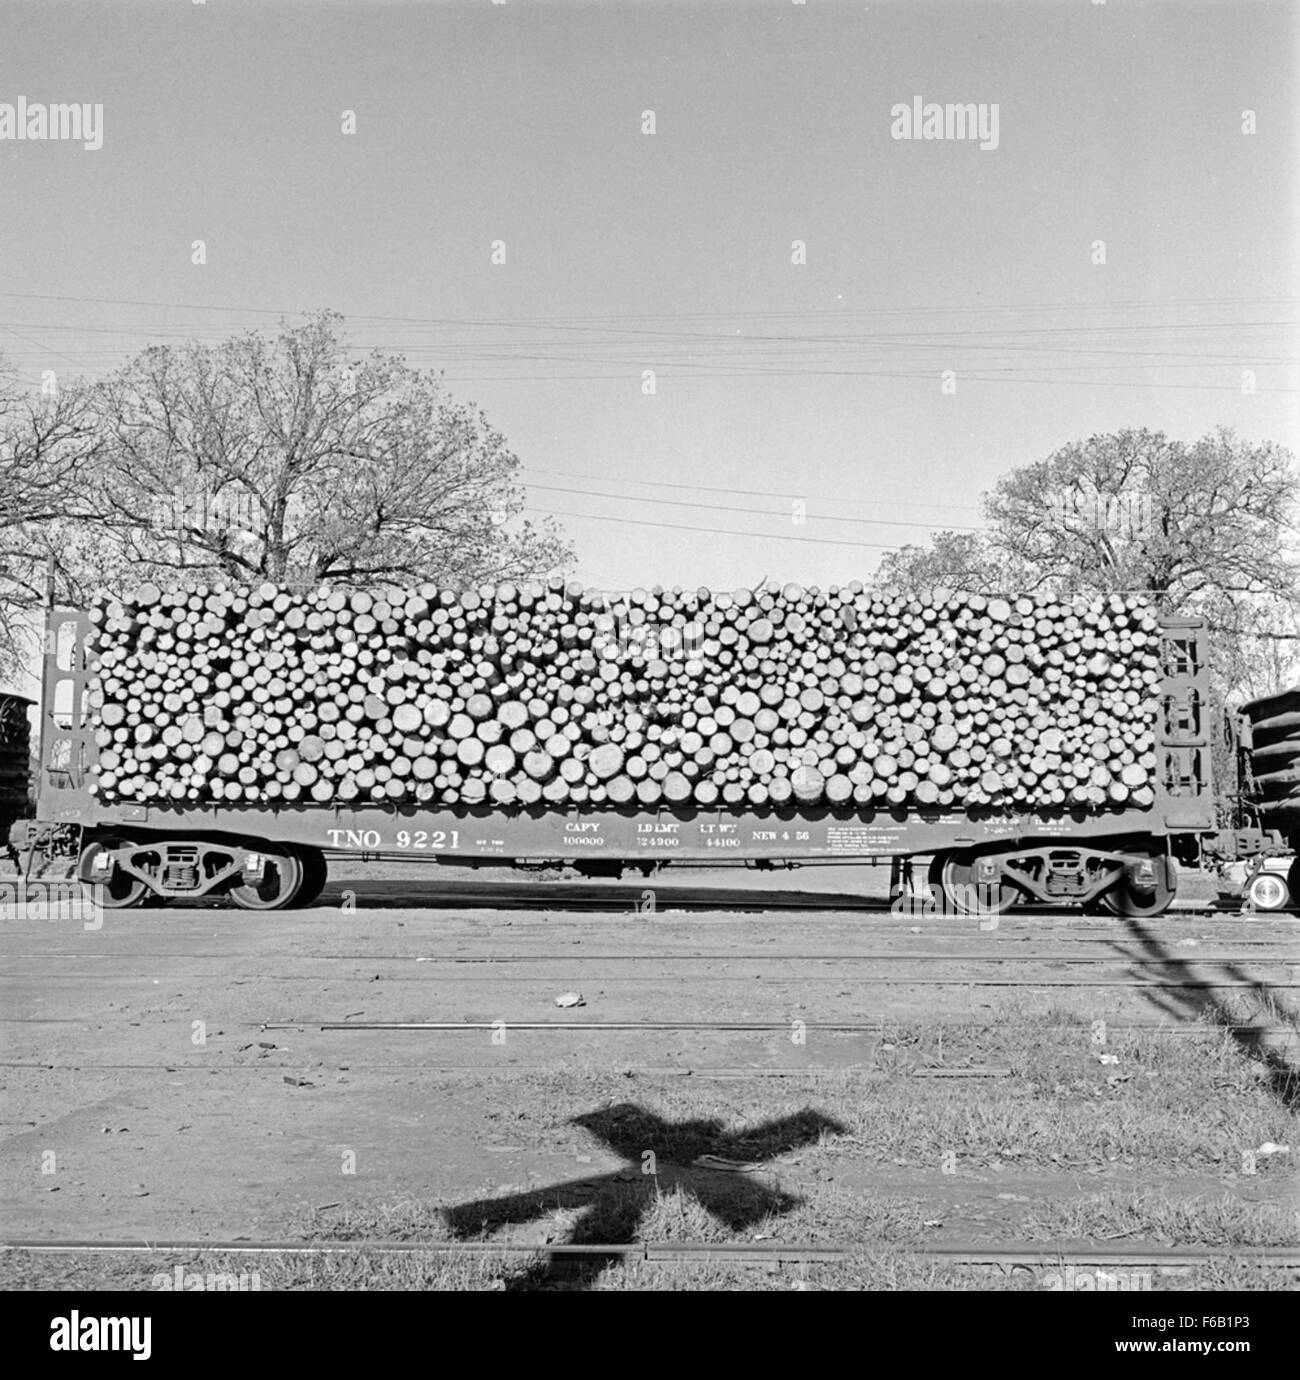 [Texas And New Orleans, Southern Pacific, 50 Ton Pulpwood